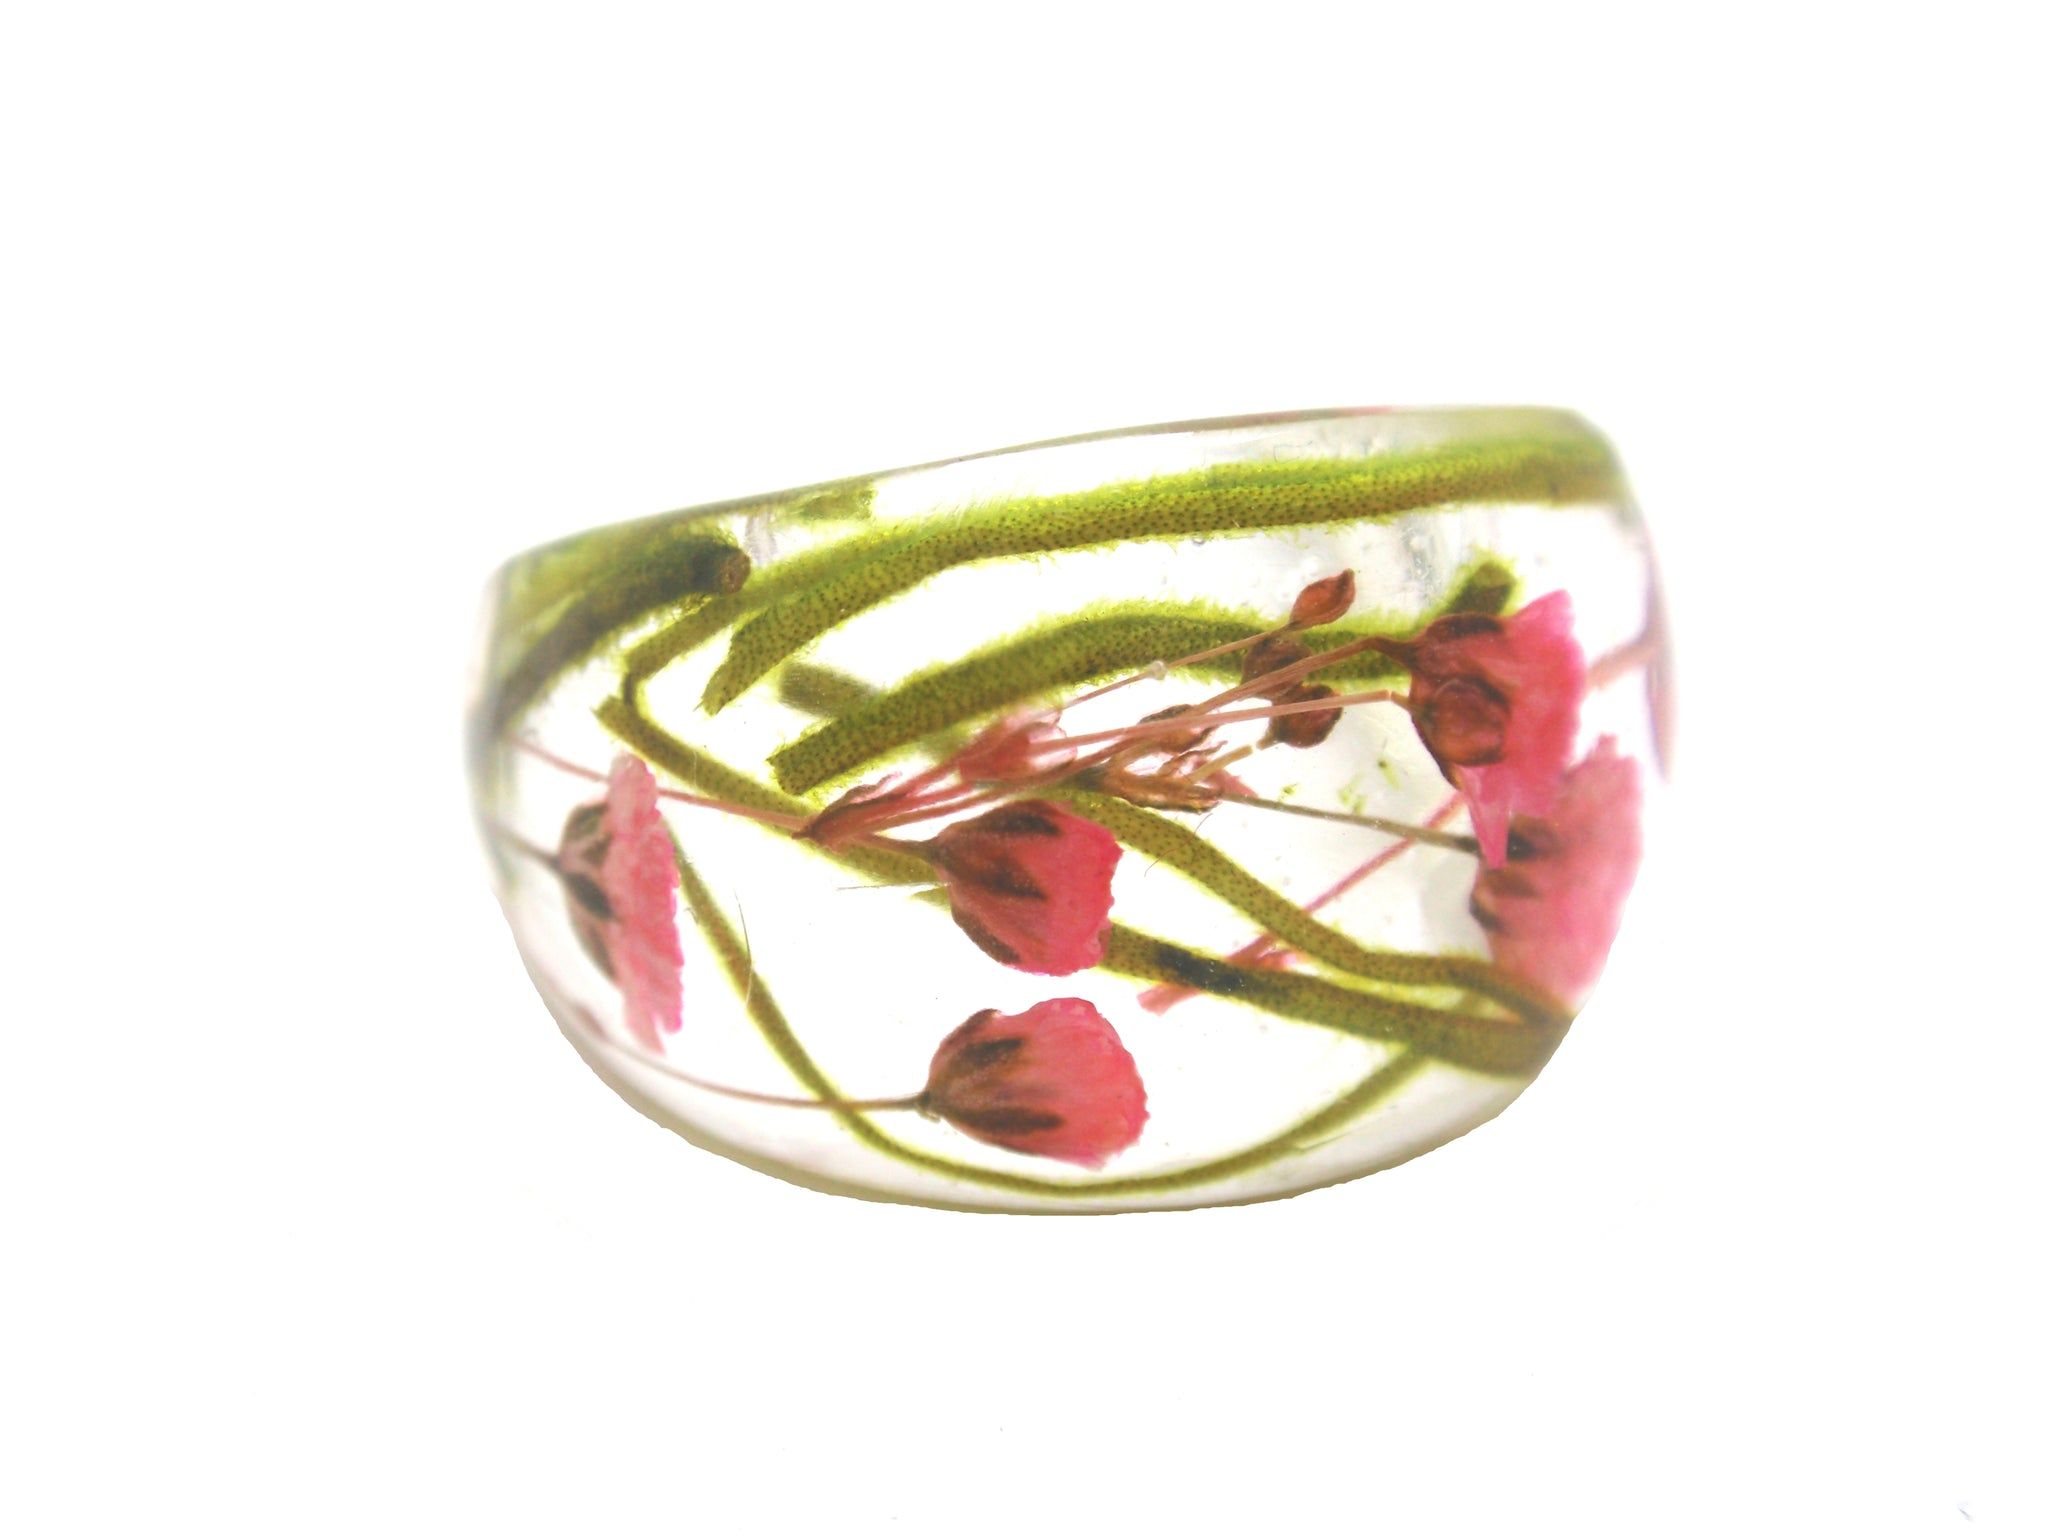 Botanical ring with real flowers- Baby's breath and moss